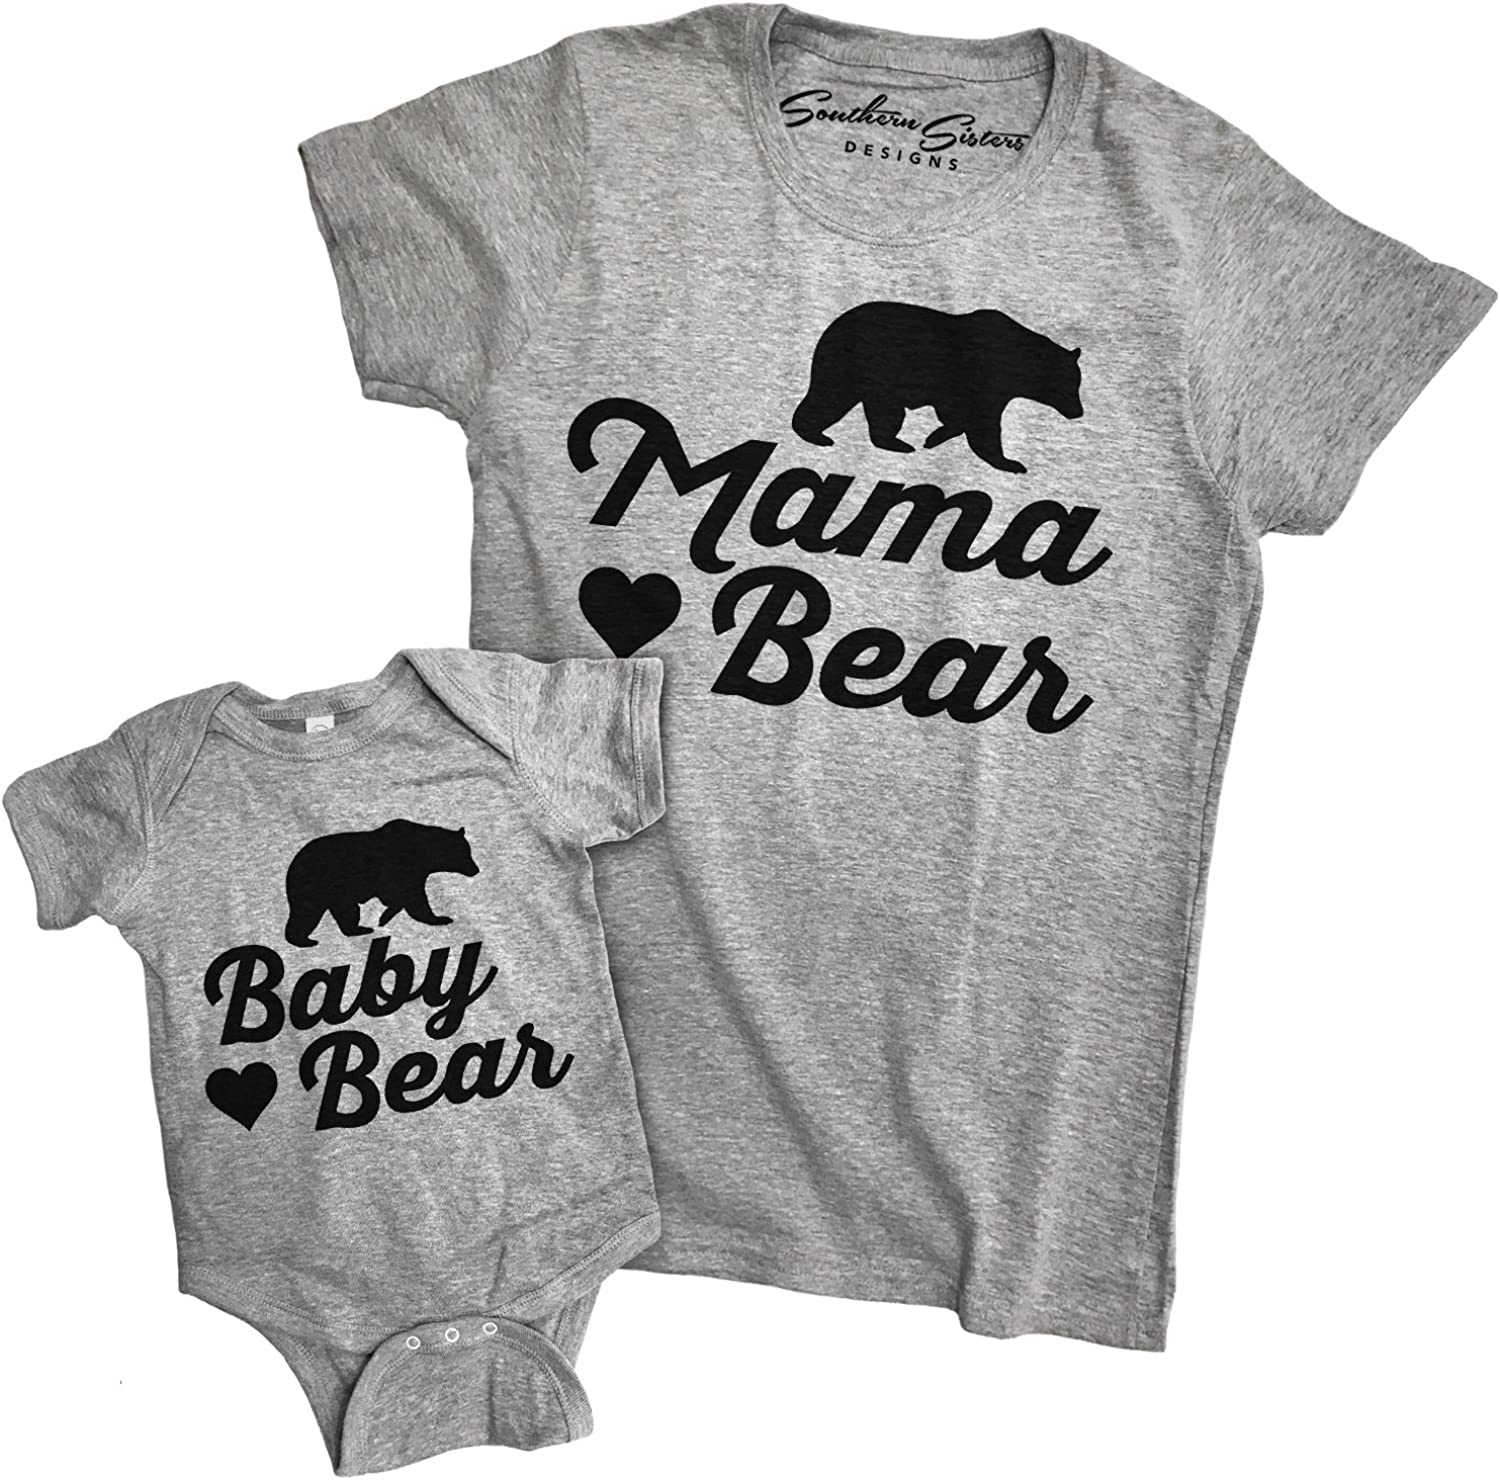 Mama Bear Shirt Set Mommy and Me Shirts Mom and Son Shirts,Mom and Daughter Shirts,Baby Bear Shirt Mommy and Me Outfits Mothers Day Gift